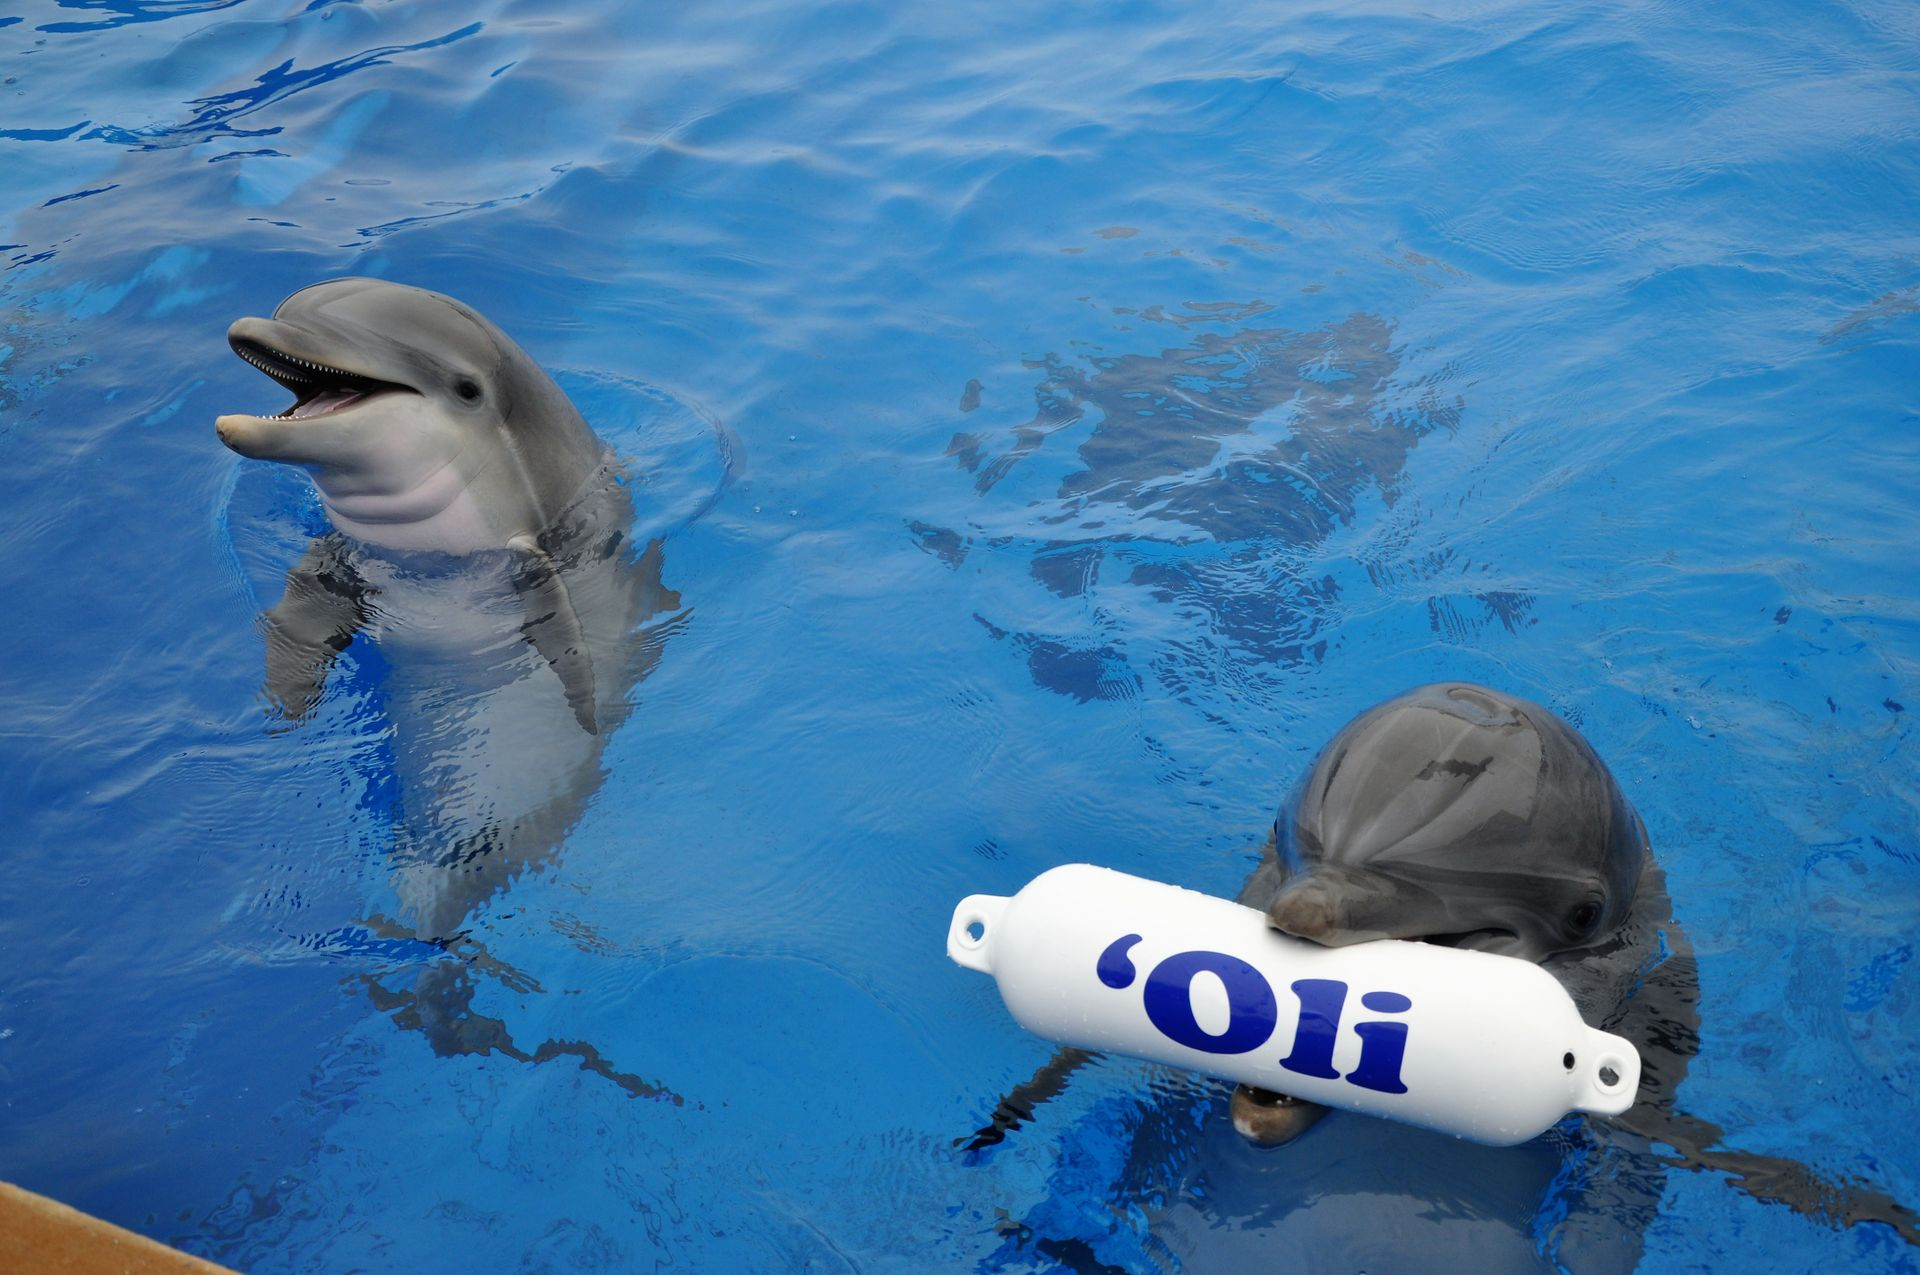 five fin tastic reasons to visit marineland dolphin adventure